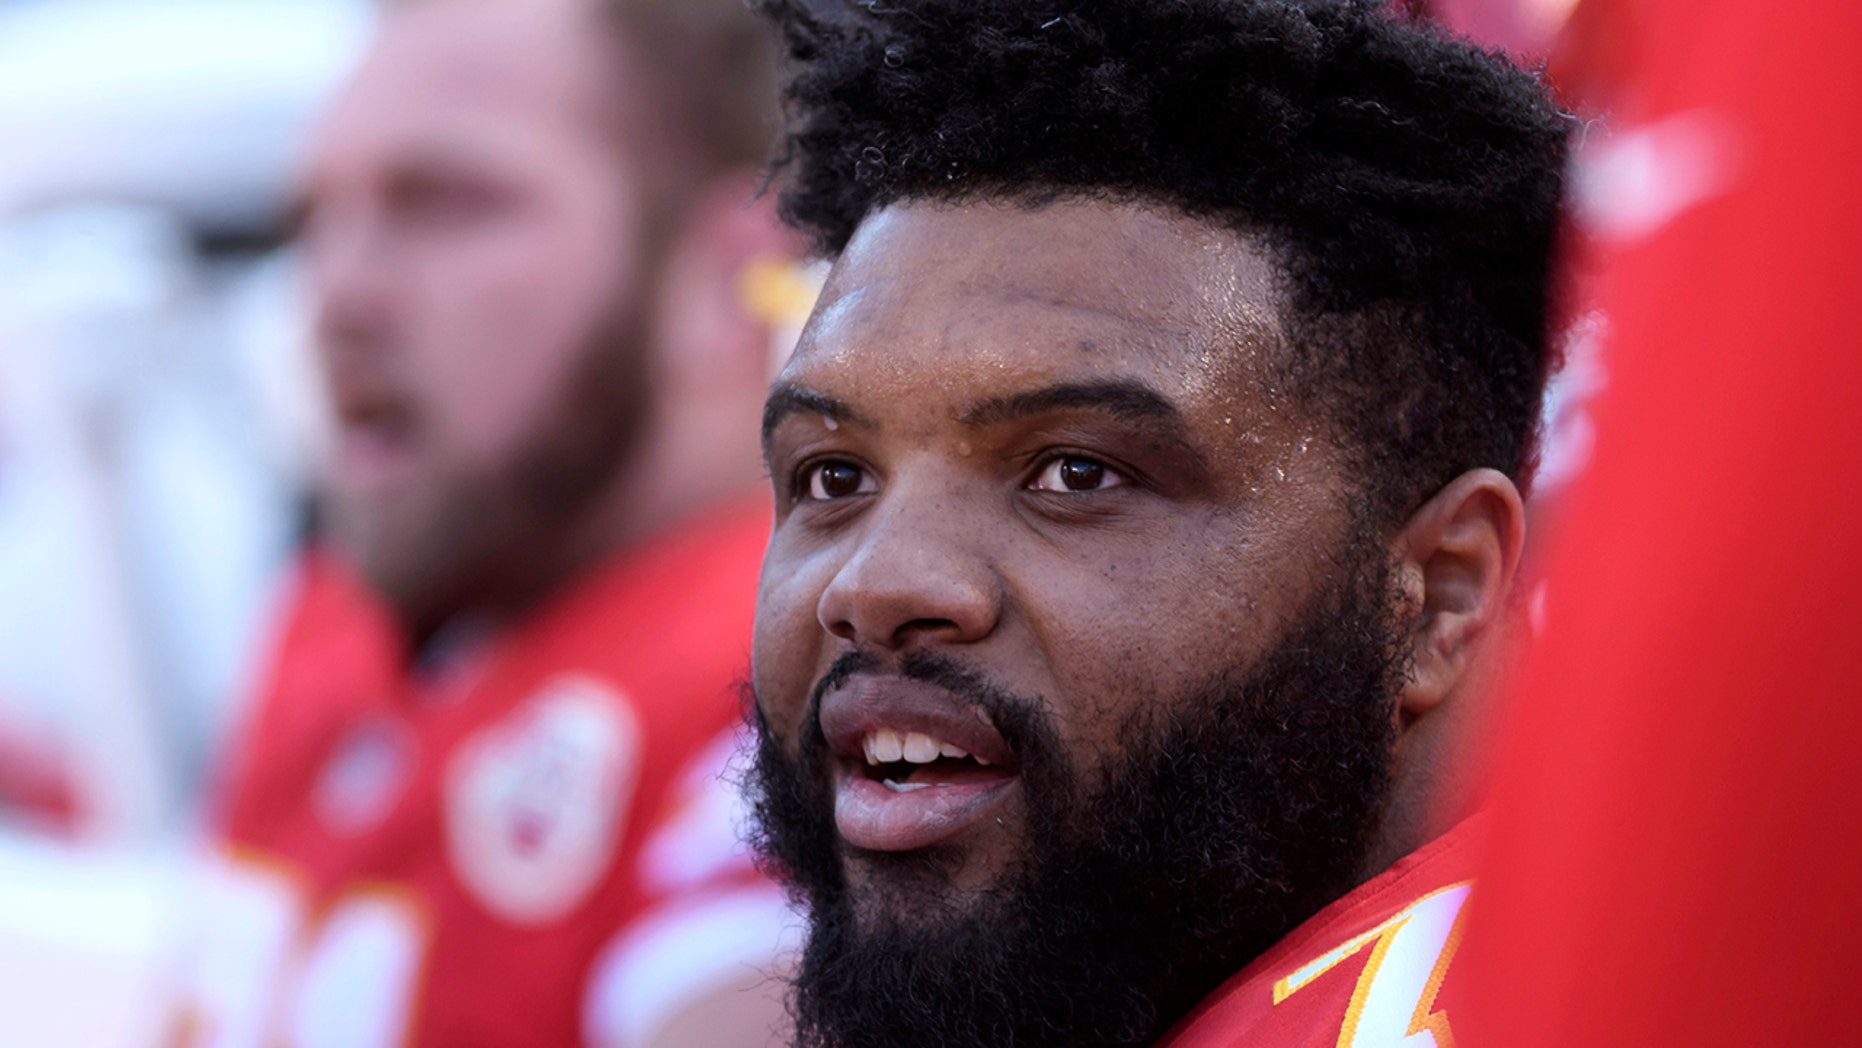 FILE - In this Dec. 9, 2018, file photo, Kansas City Chiefs offensive tackle Jeff Allen during the first half of an NFL football game in Kansas City, Mo.